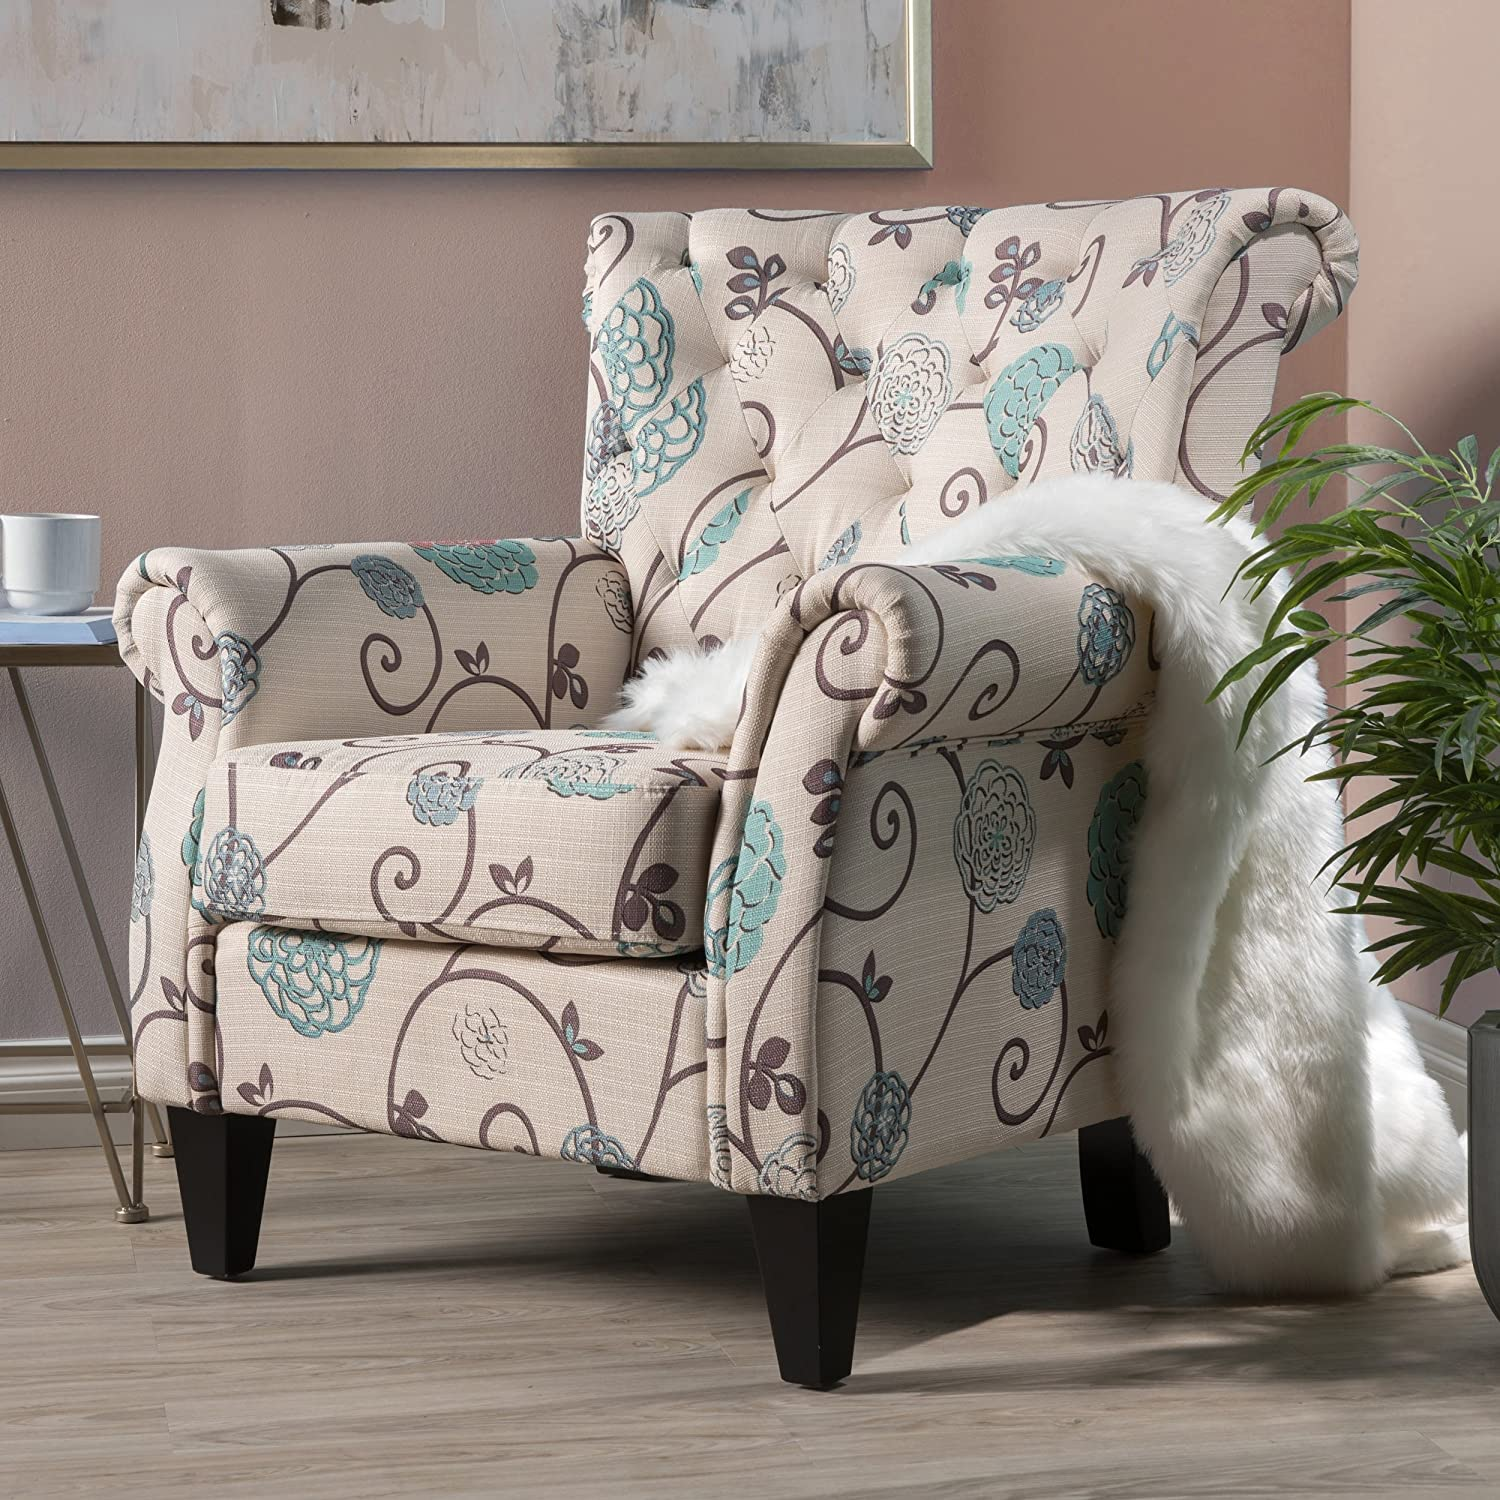 Accent Chairs.Accent Chairs With Arms For Living Room Bedroom Tufted Club Chair Deco Teal Floral Upholstery